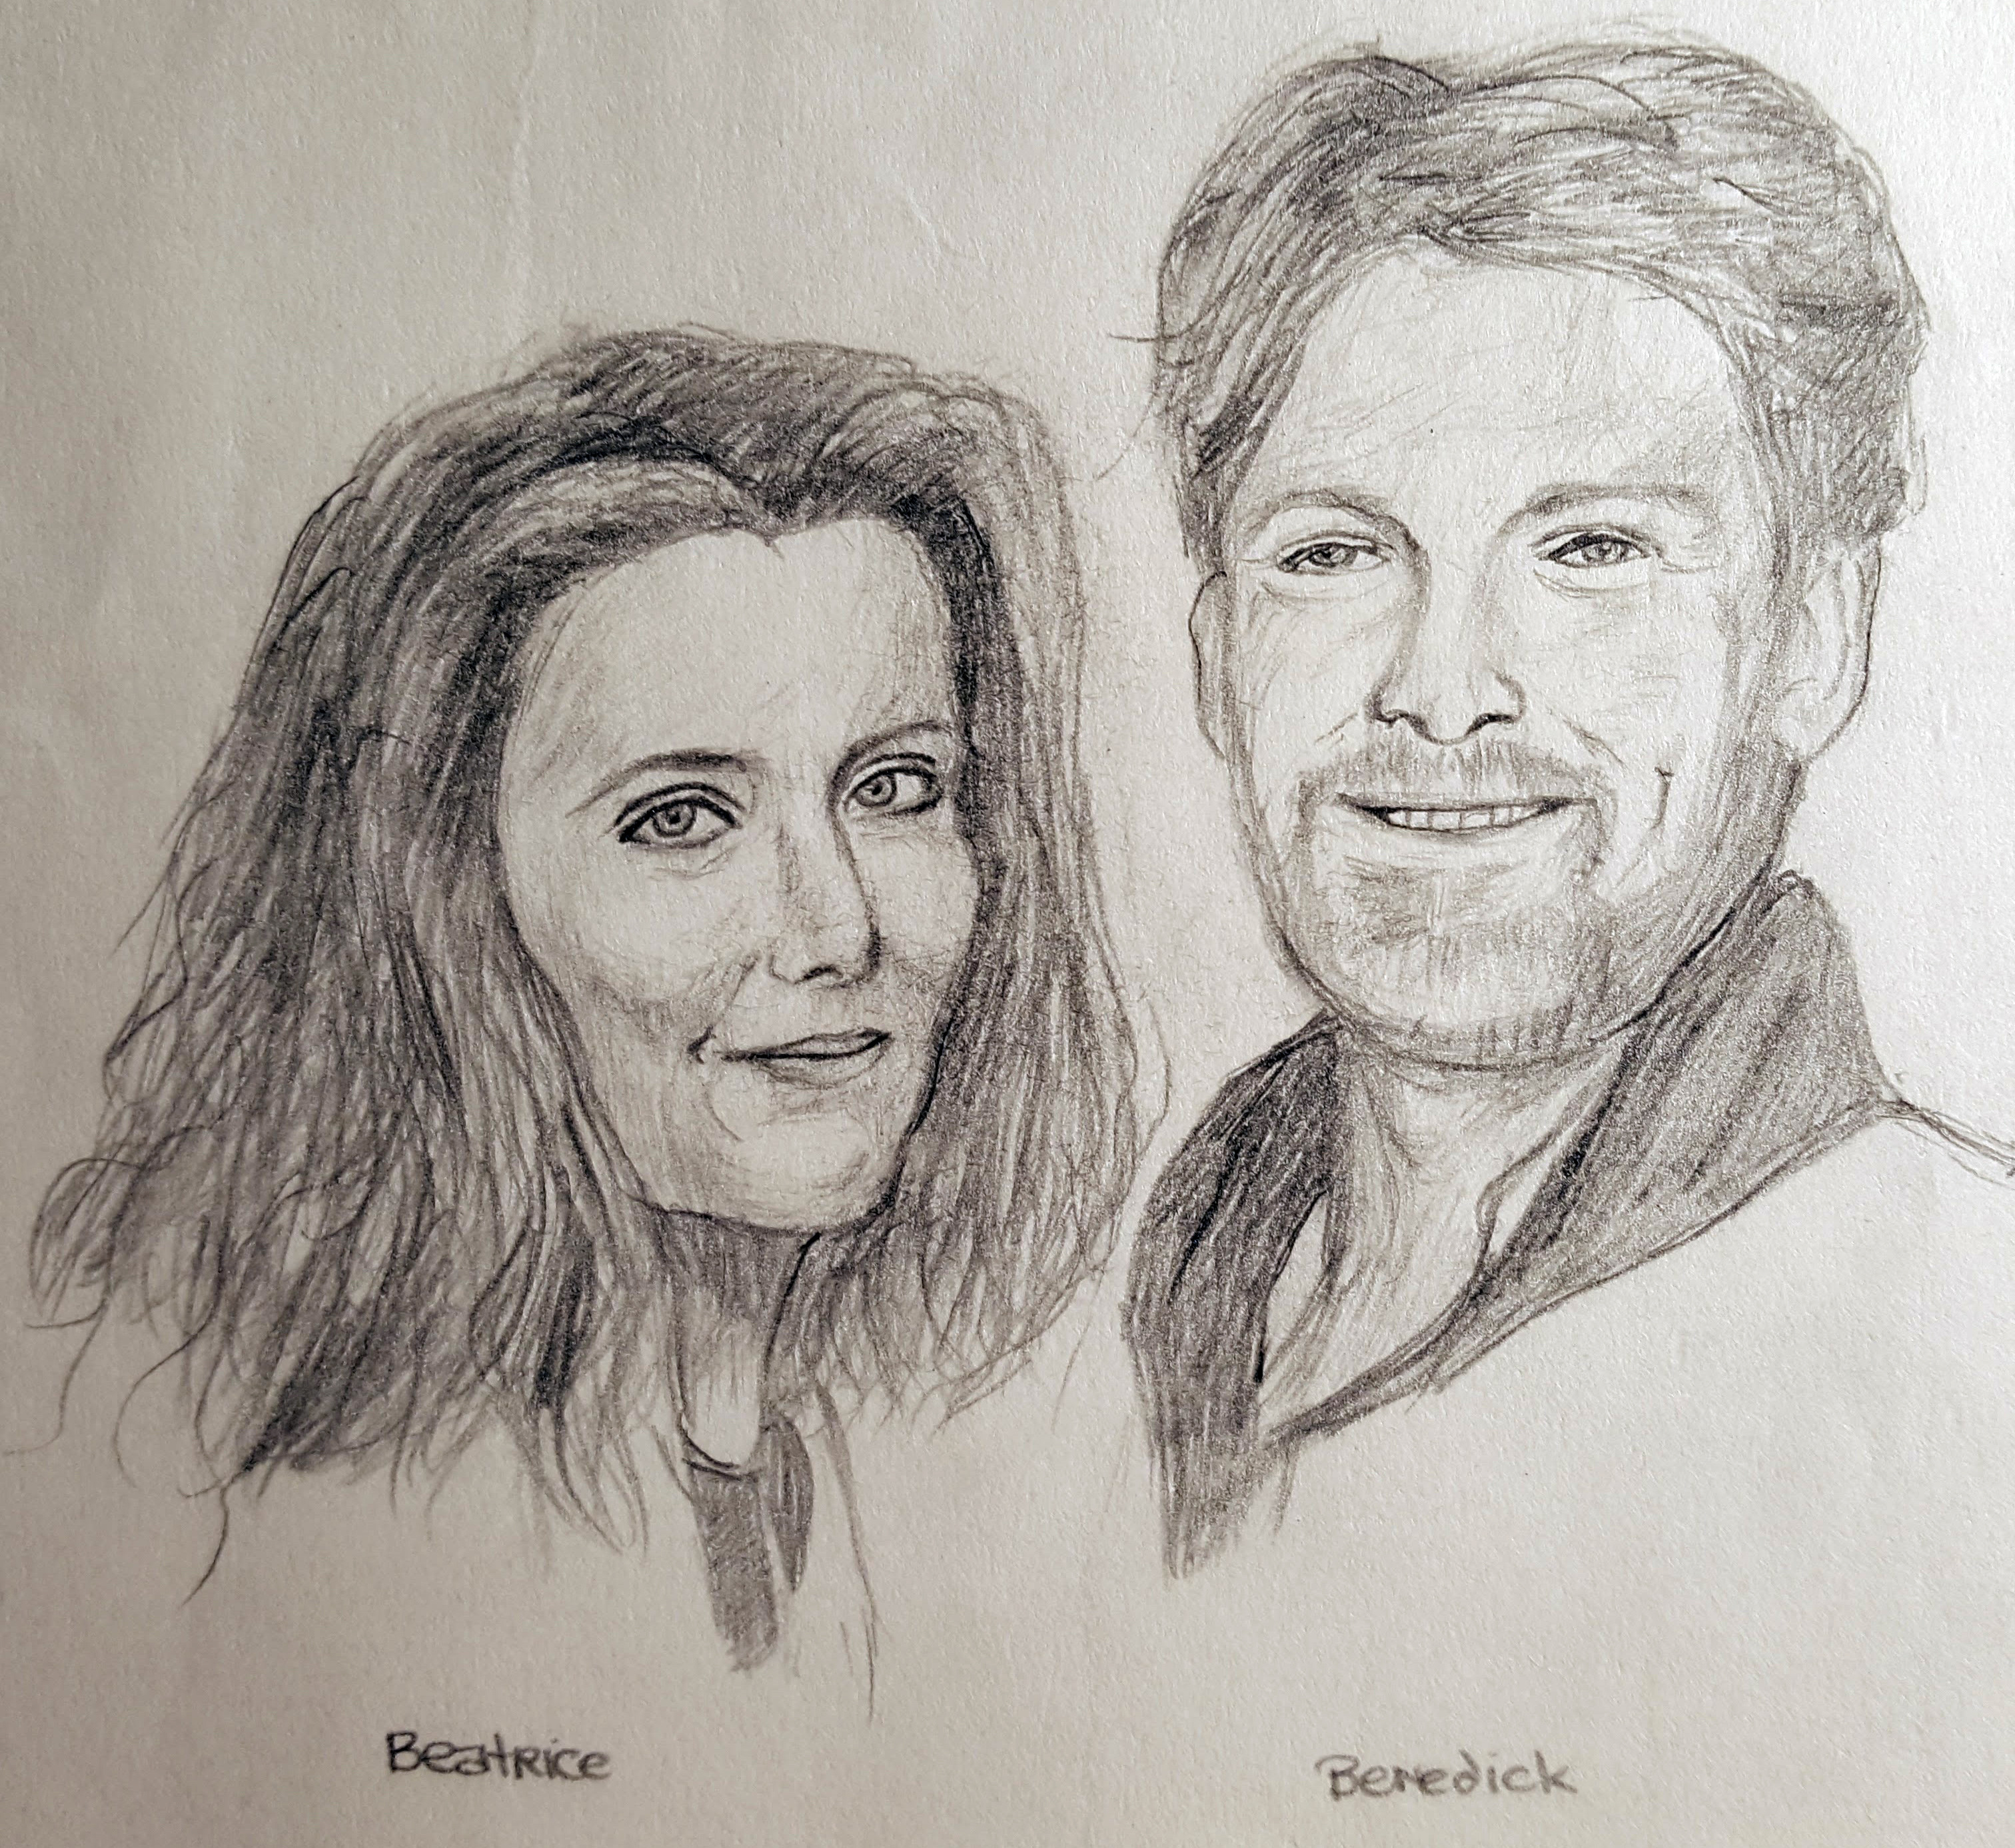 Beatrice (Emma Thompson) and Benedick (Kenneth Branagh) from Much Ado About Nothing.